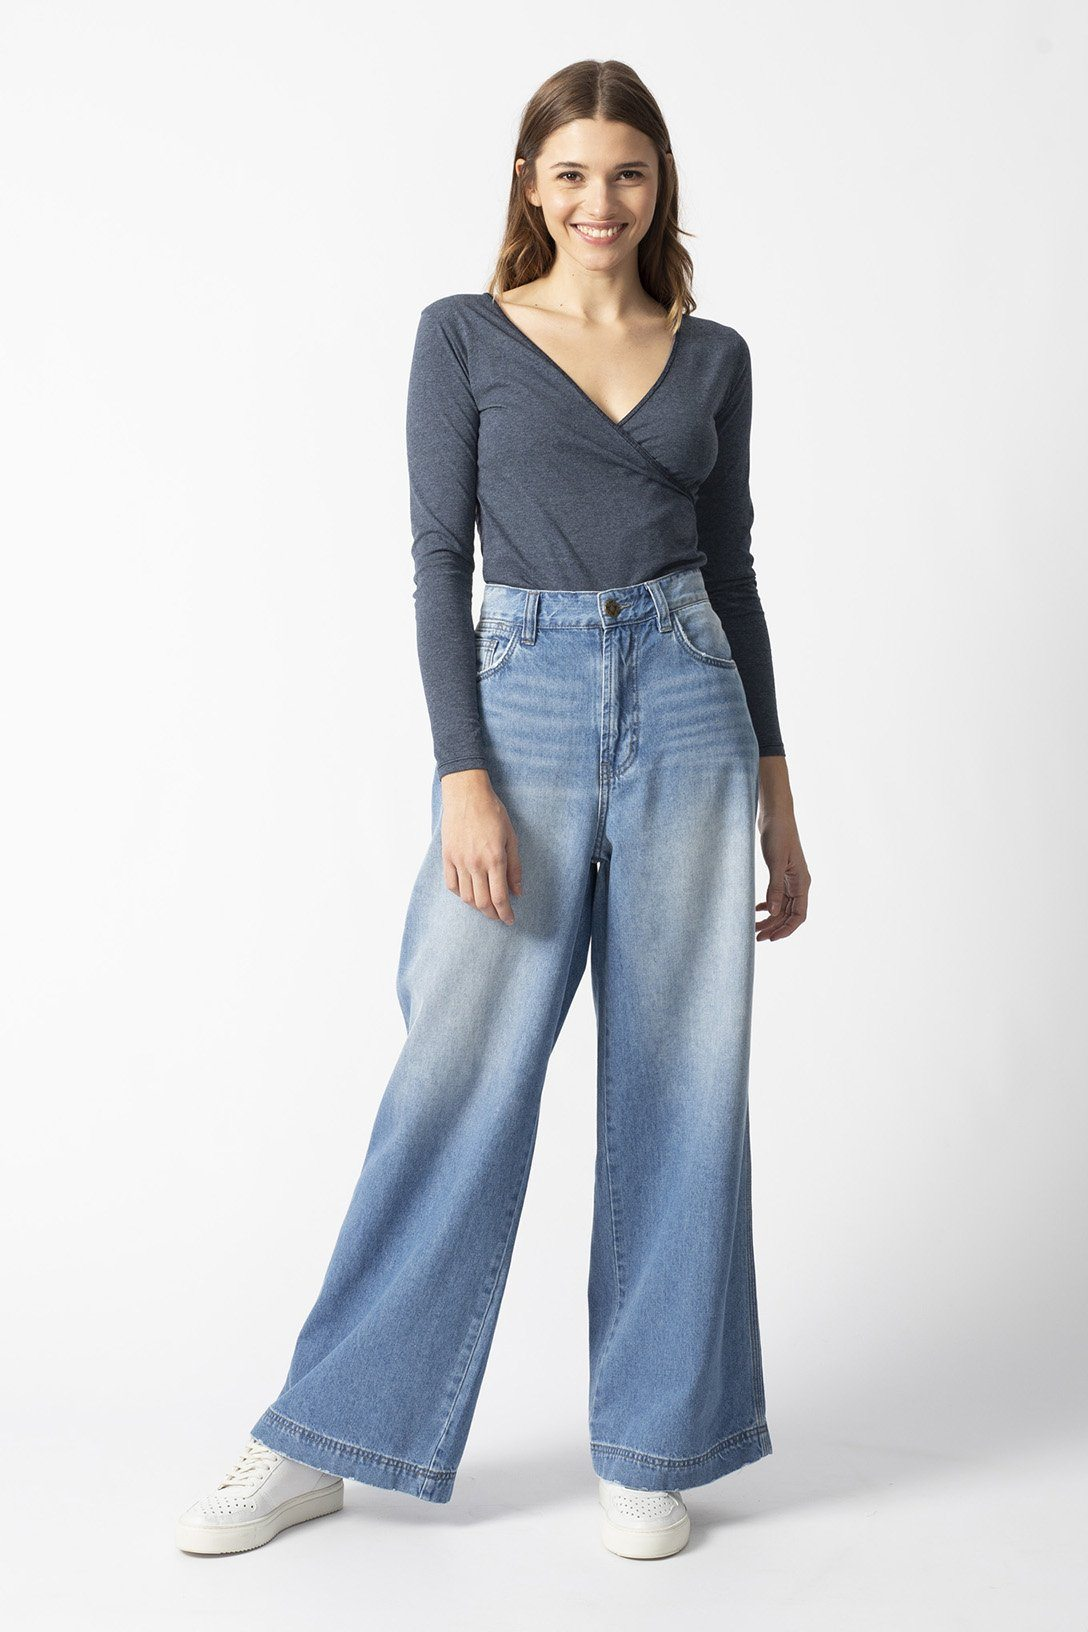 SKATER light denim organic cotton Jeans by UCM - Komodo Fashion